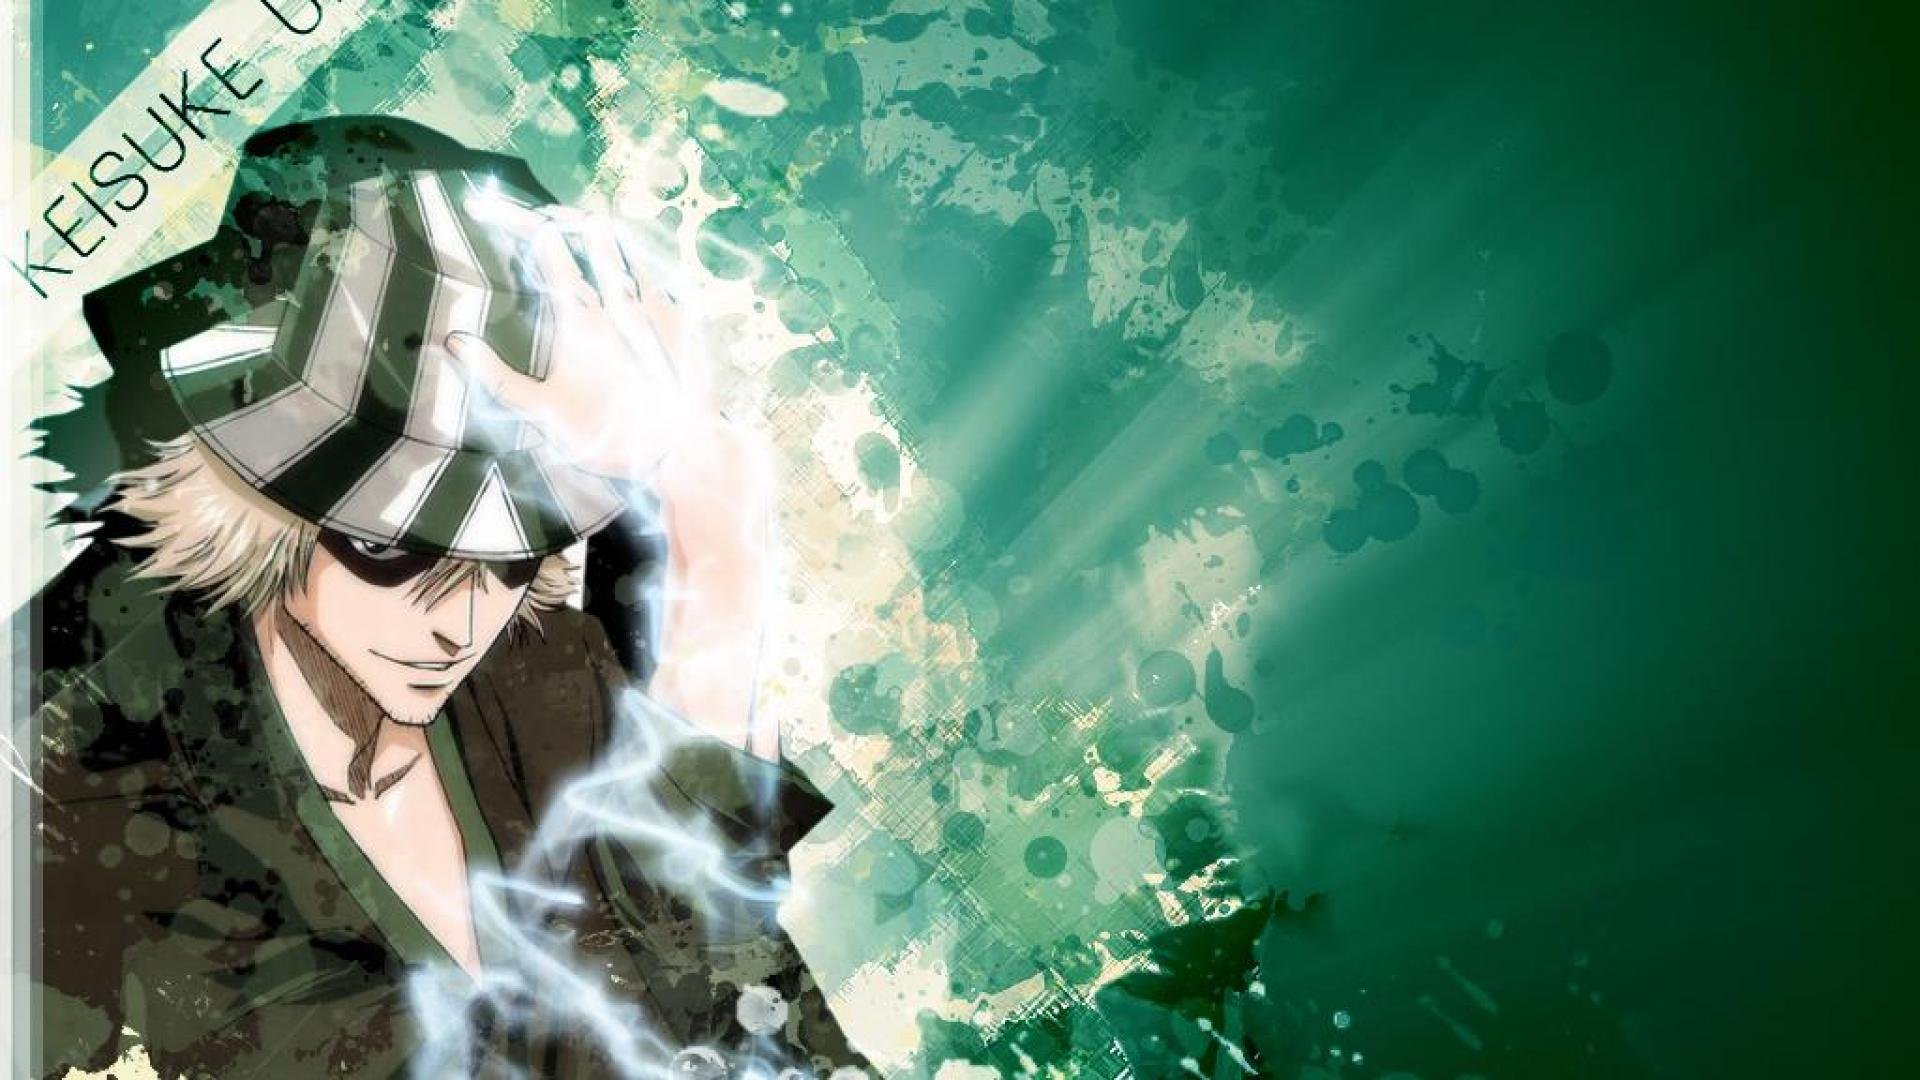 kisuke urahara wallpaper - (#30124) - HQ Desktop Wallpapers ...